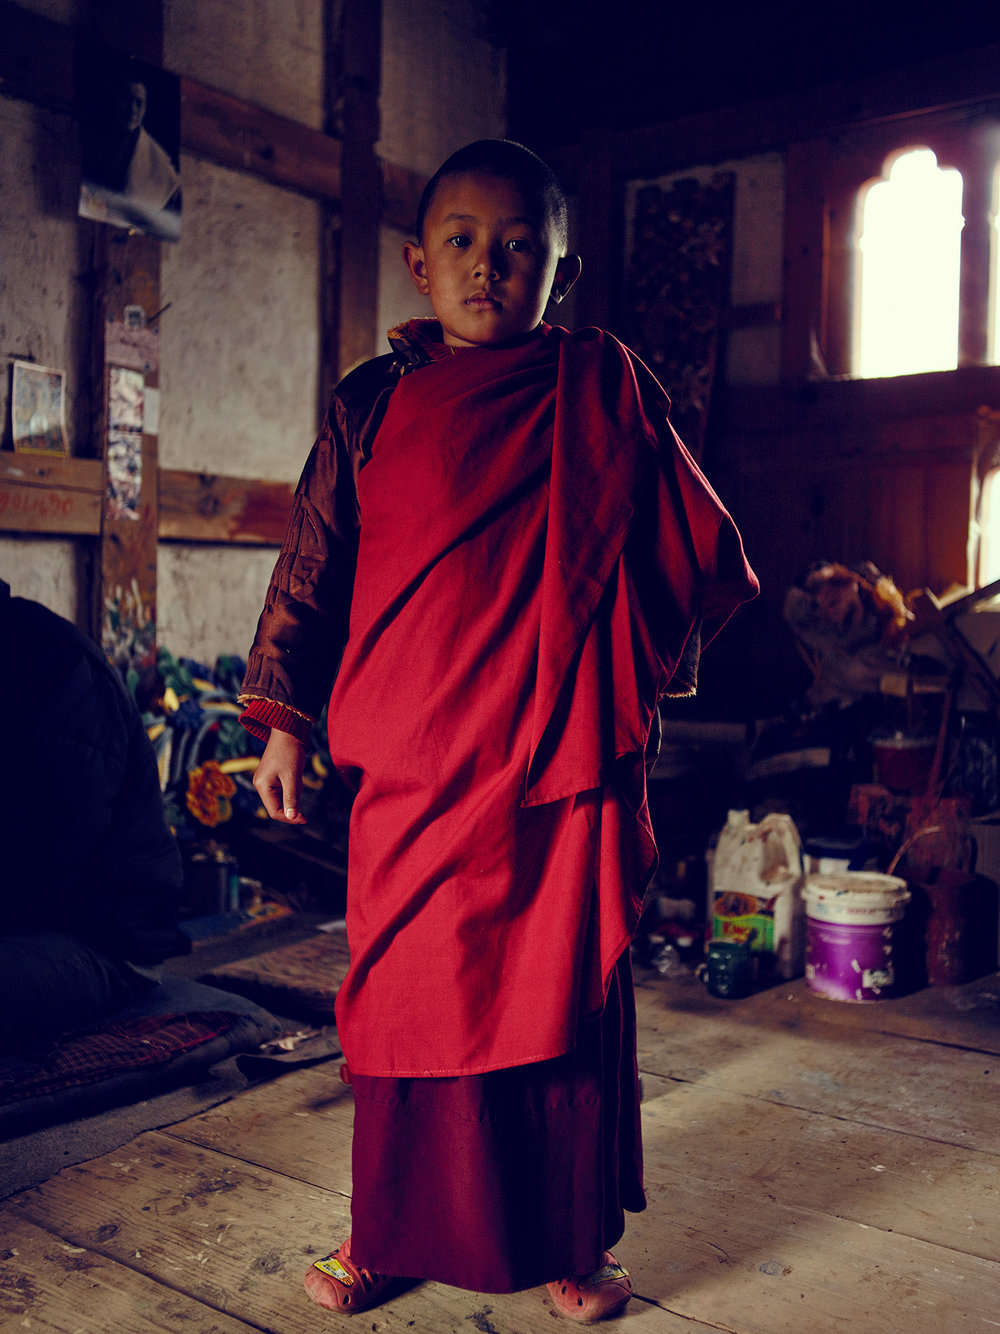 Young Monk in Bhutan